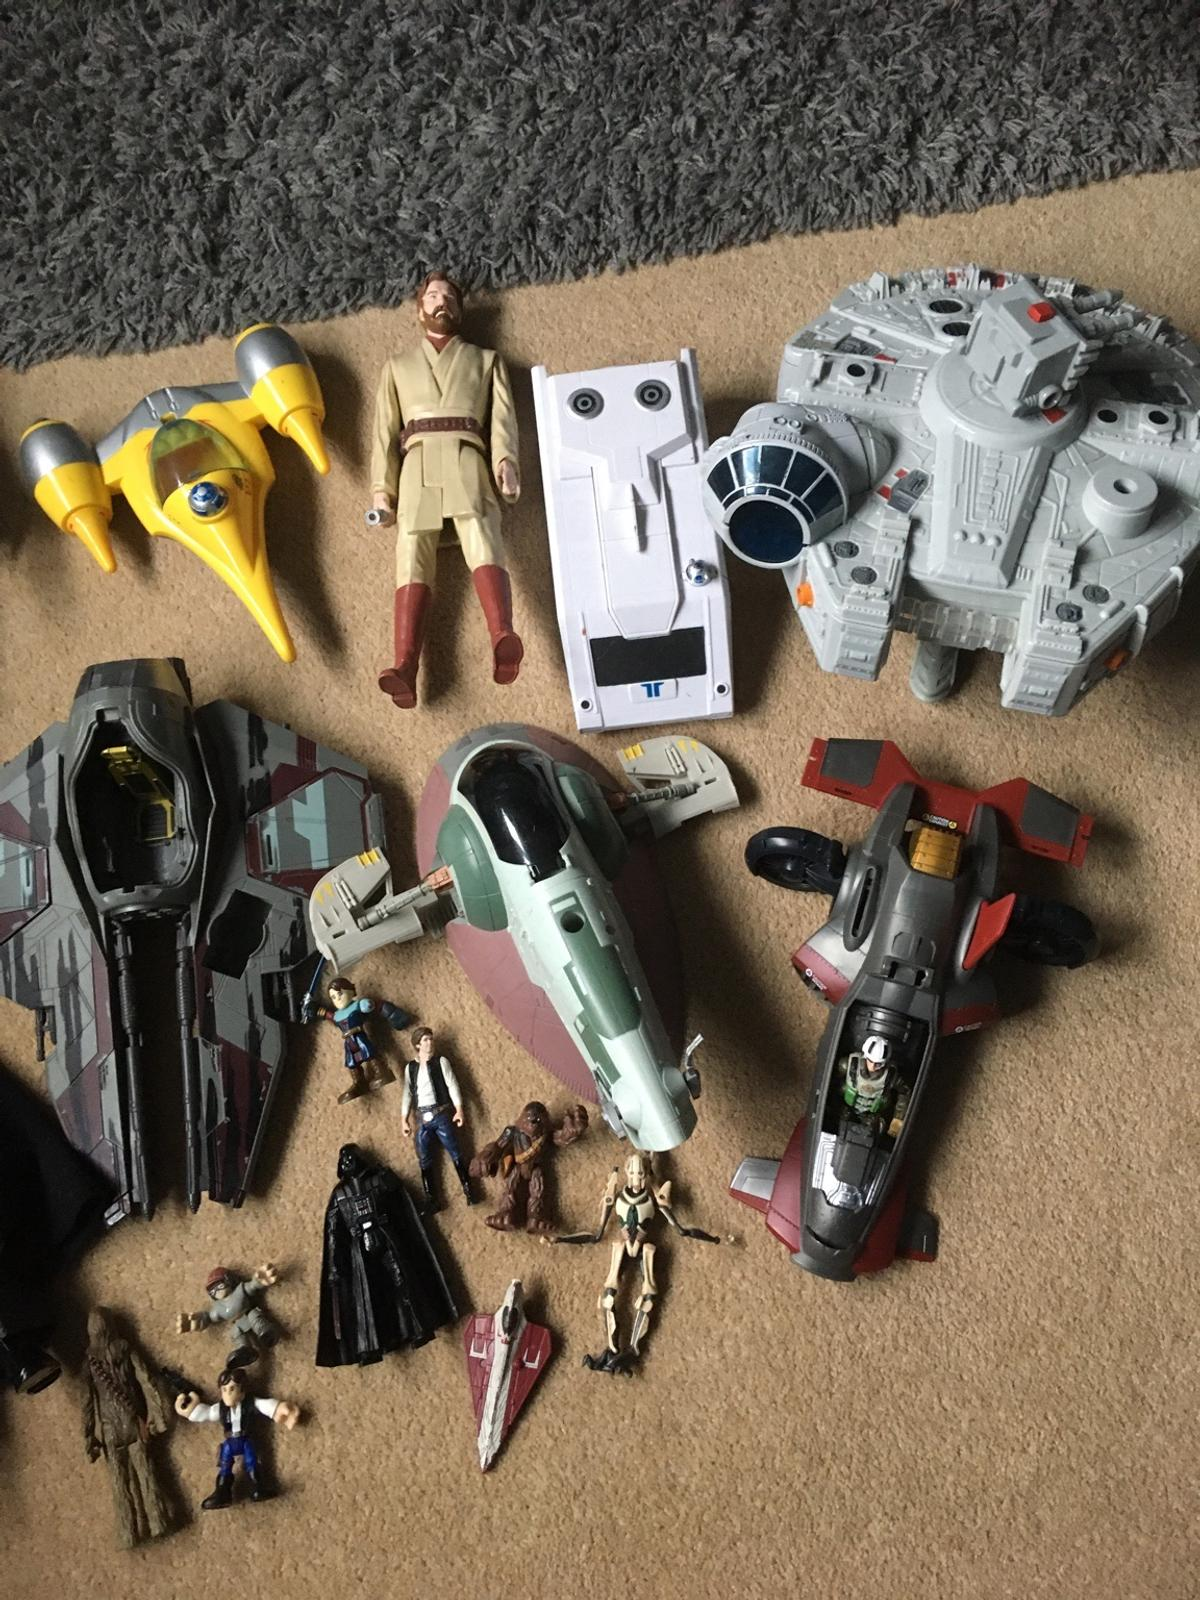 4 large figures 7 small figures 5 spaceships 1 millennium falcon The green and brown spaceship and the small figure by it have been sold separately